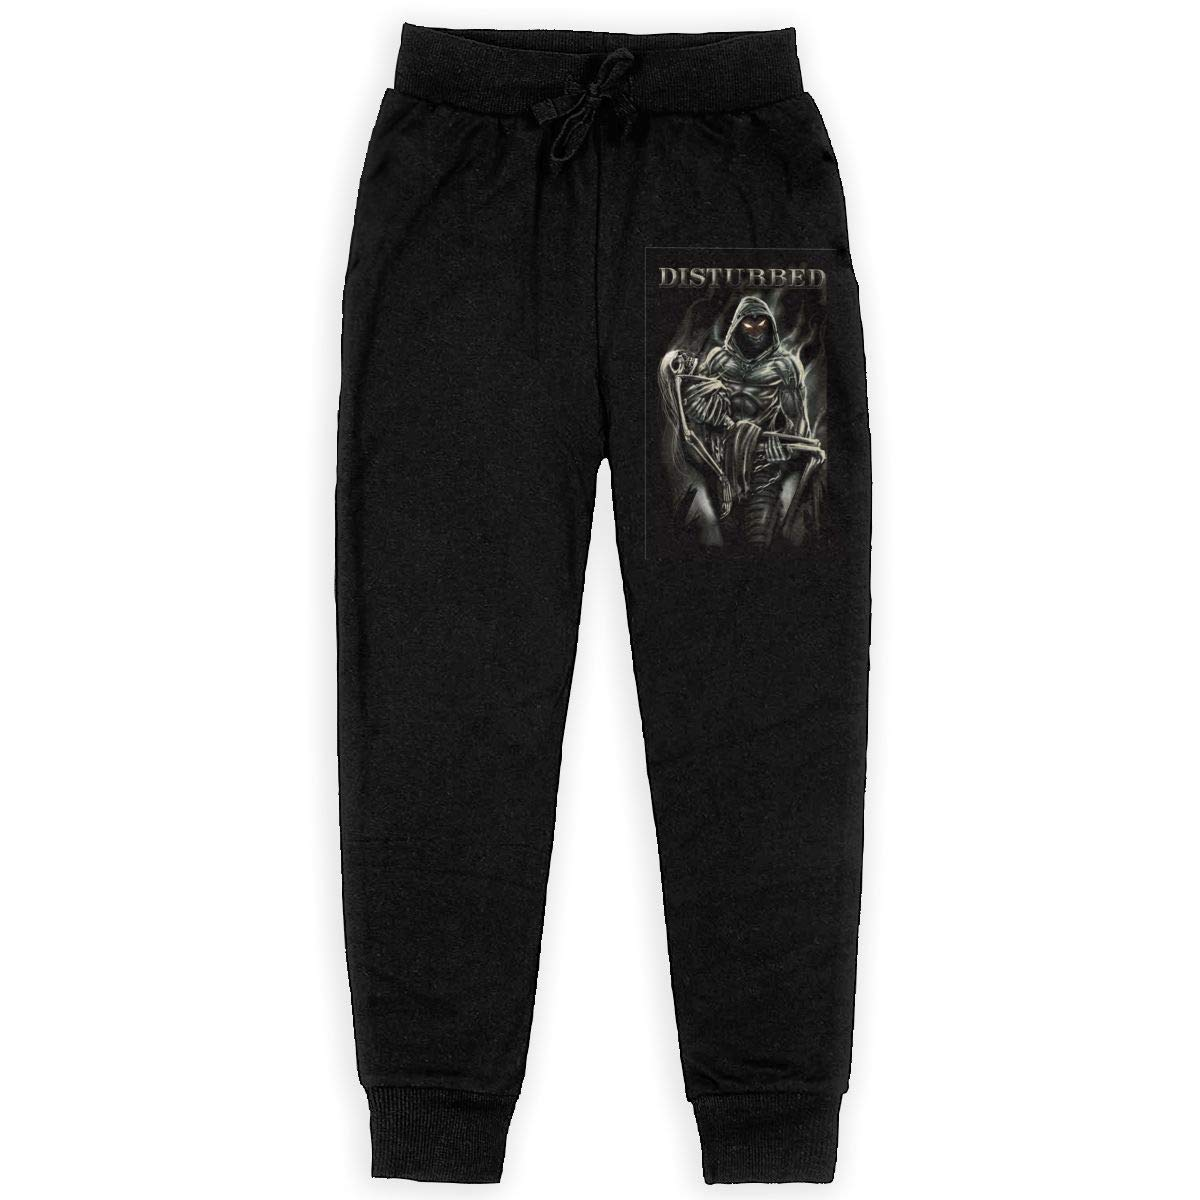 The Hell with Your Mountains Youth Classic Sweatpants Pull-on Jogger Training Pants